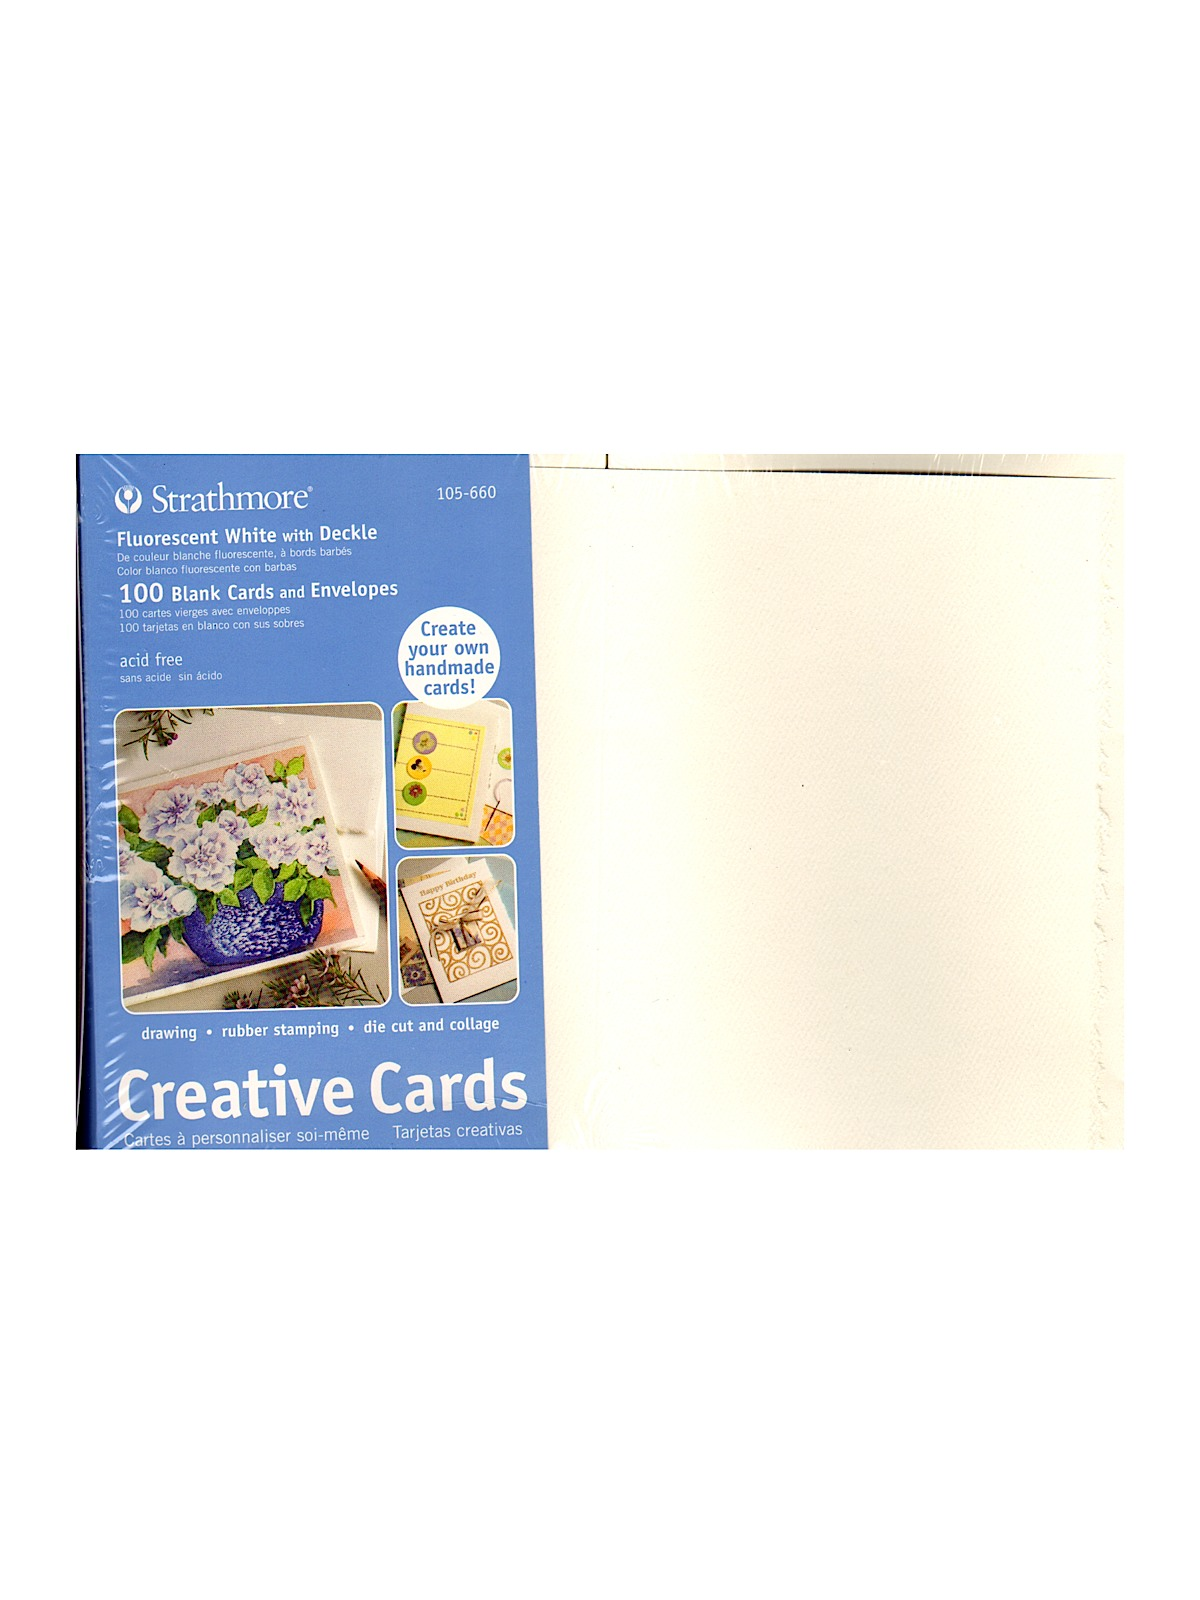 Strathmore blank greeting cards with envelopes misterart blank greeting cards with envelopes fluorescent white with same deckle pack of 100 m4hsunfo